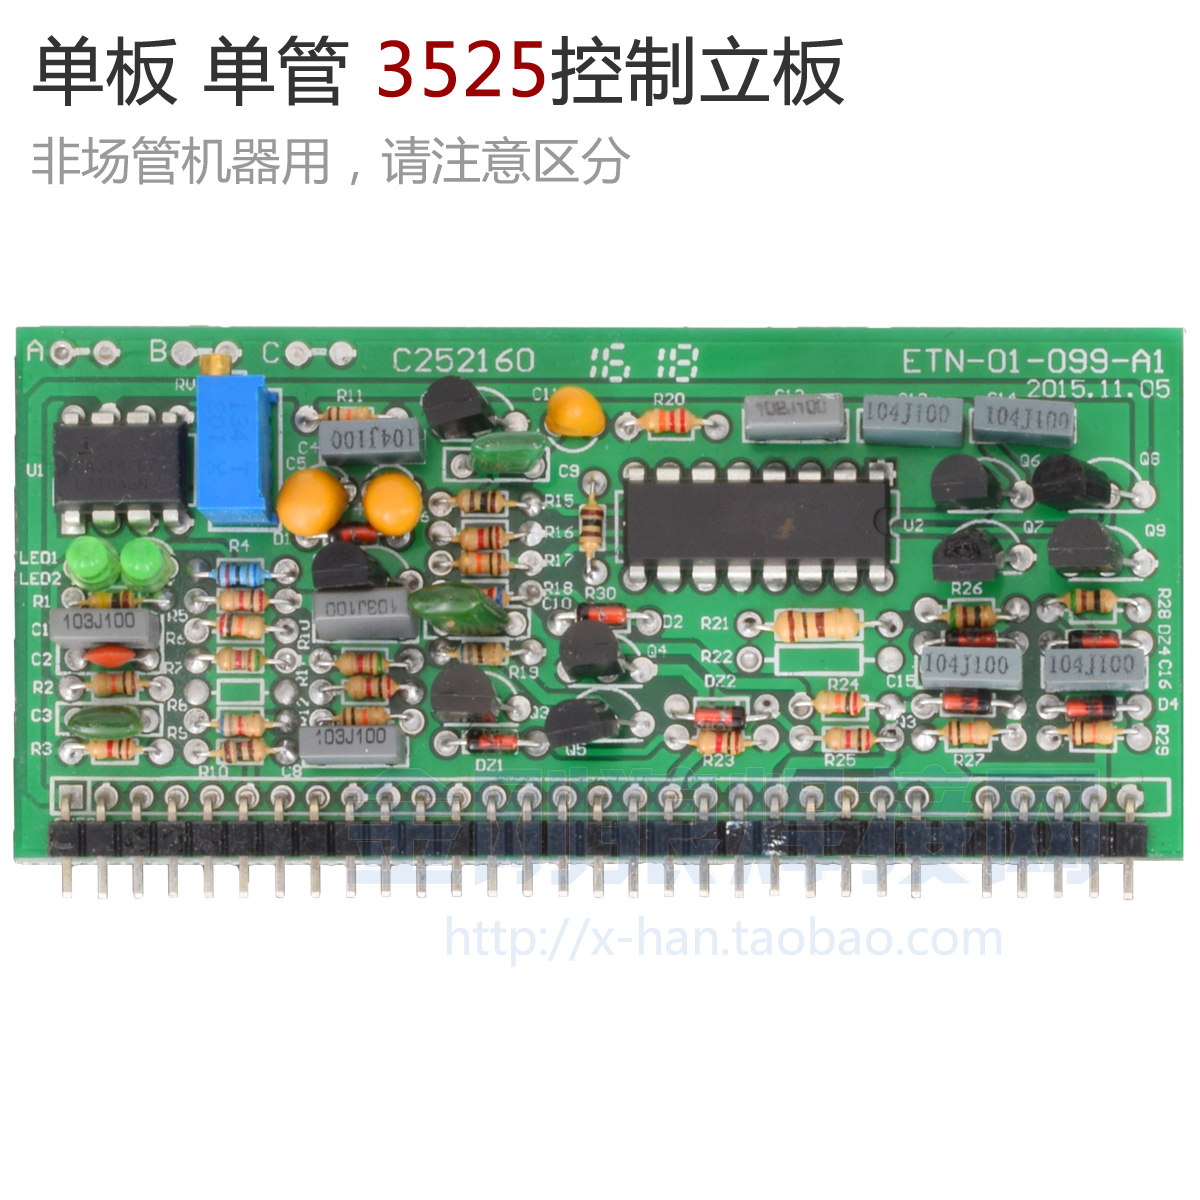 hight resolution of mosfet small control module wtih chip 3525 for zx7 tig inverter welding machine with adjustable potentiometer